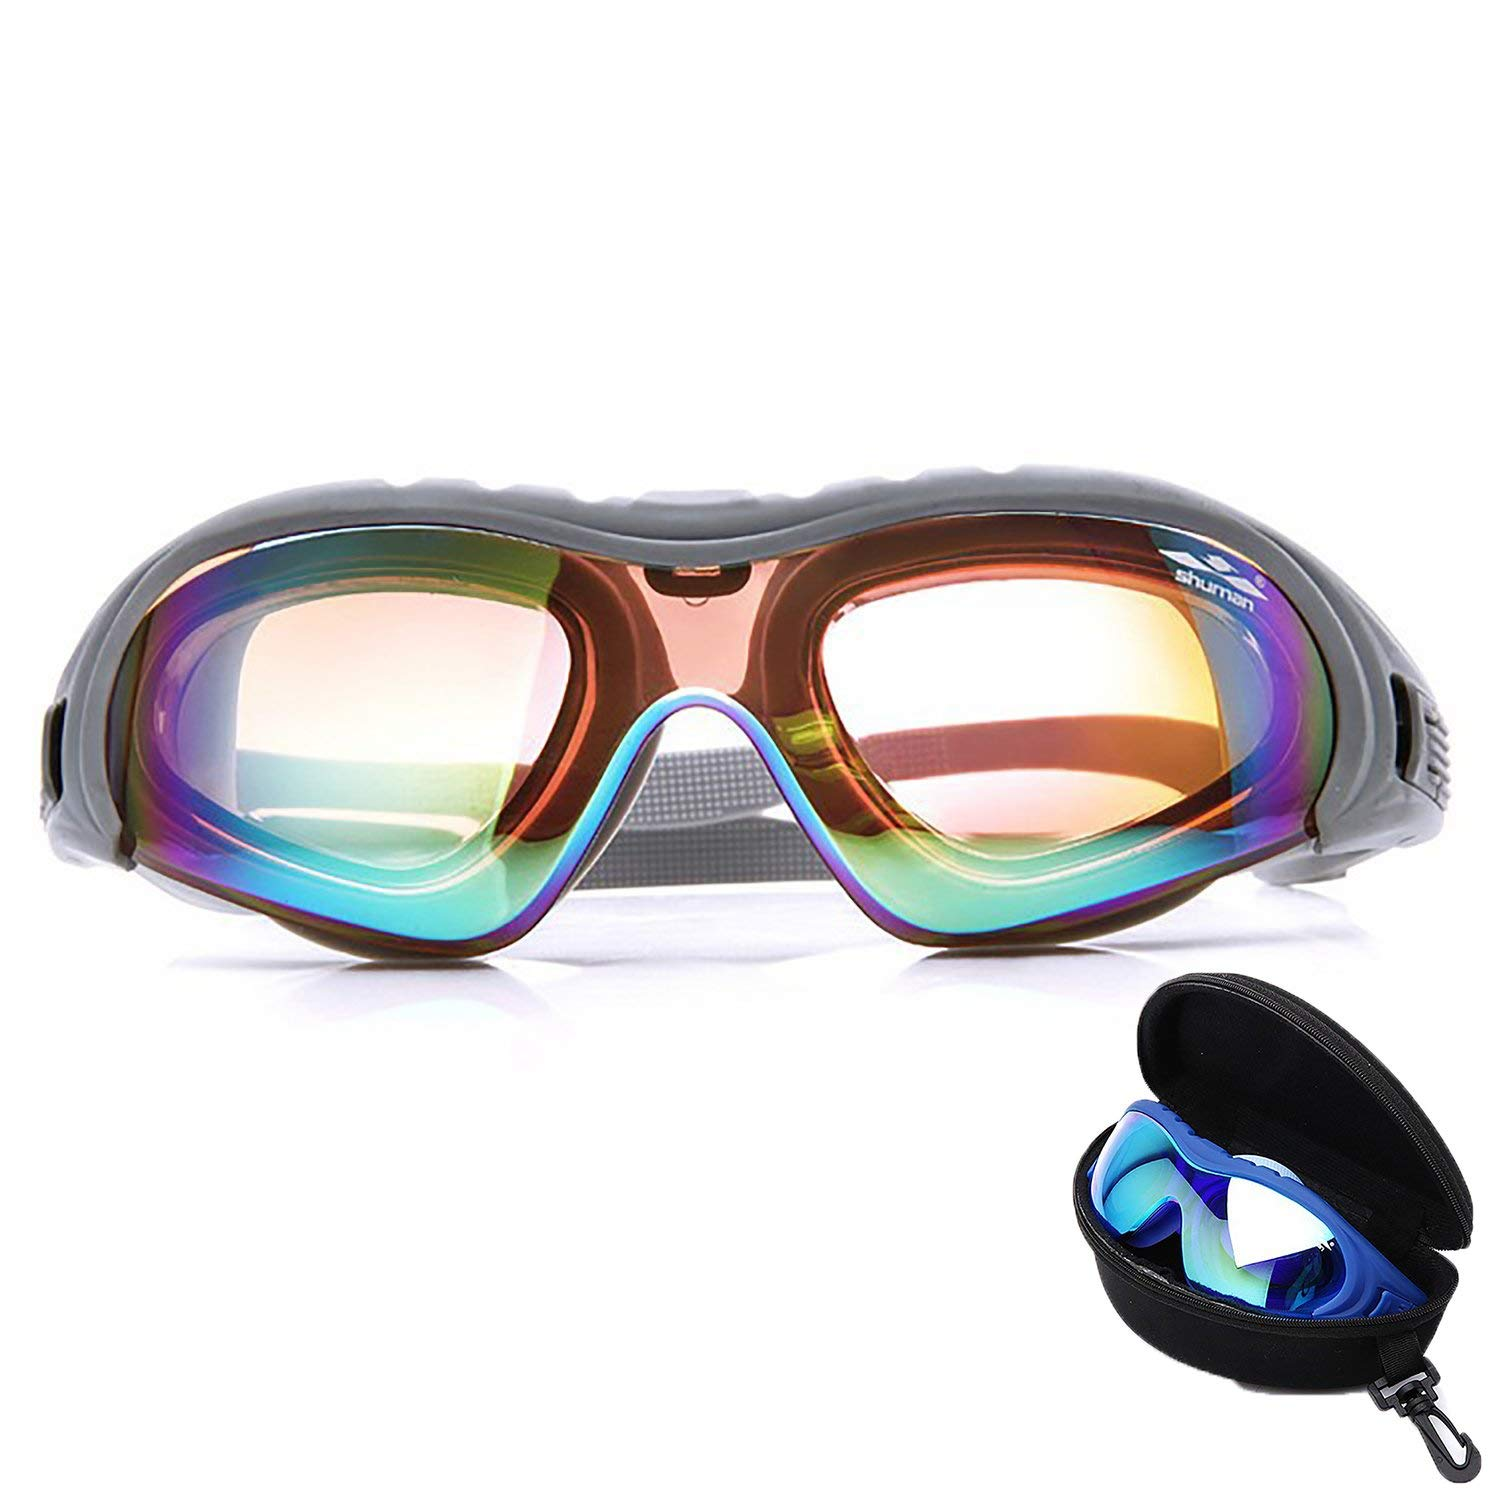 ee252597eaa Get Quotations · June Sports Swim Goggles